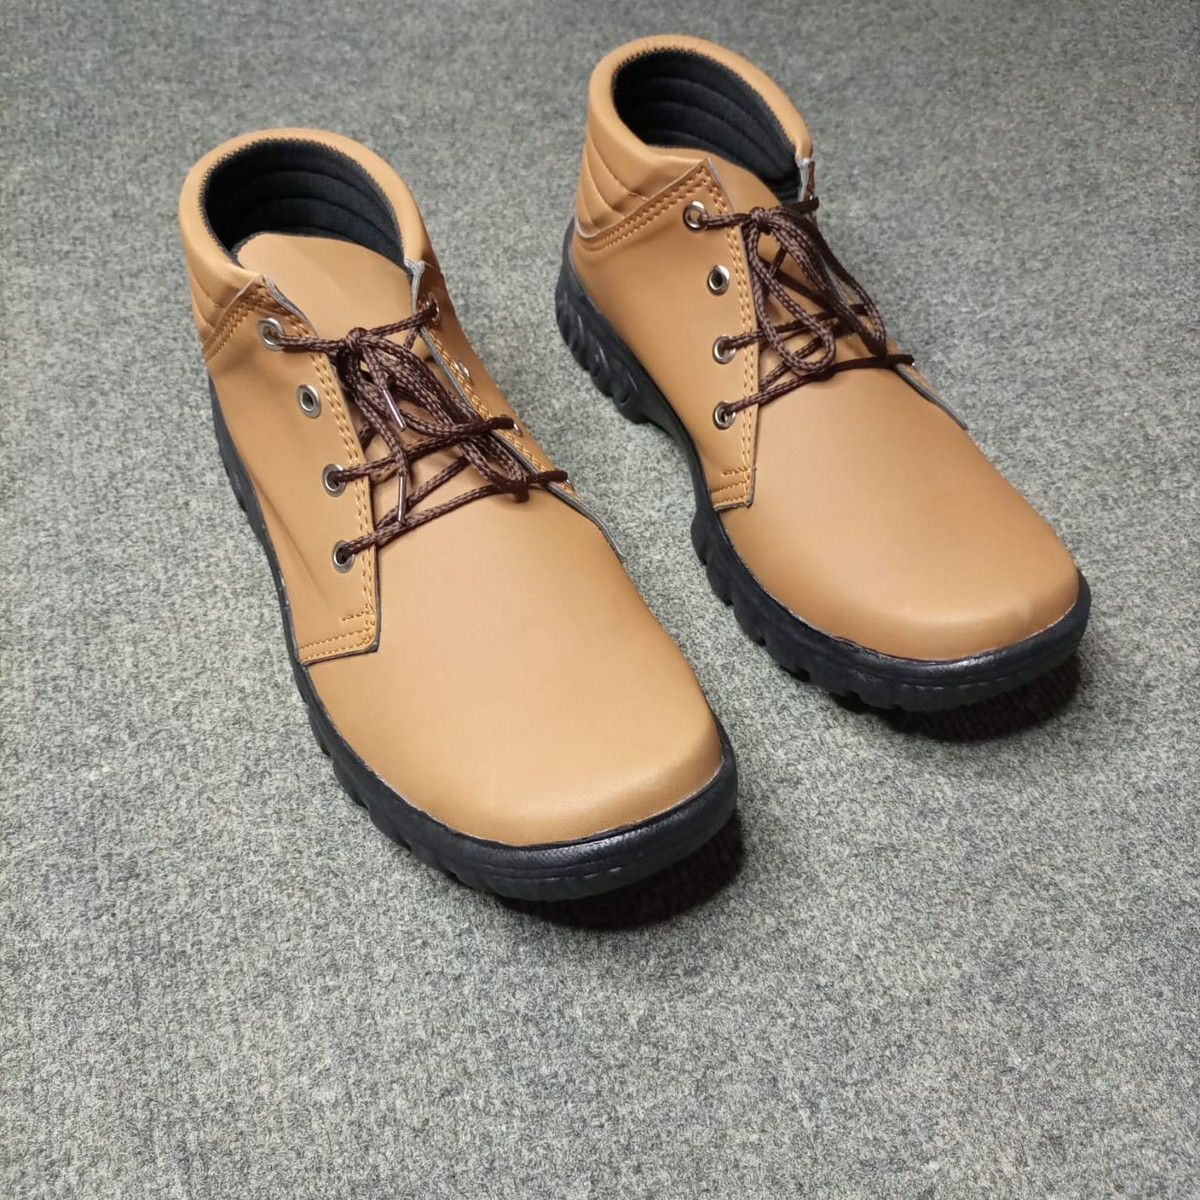 (MK) - Masterd Daily Use Long Shoes for Men CTBL1